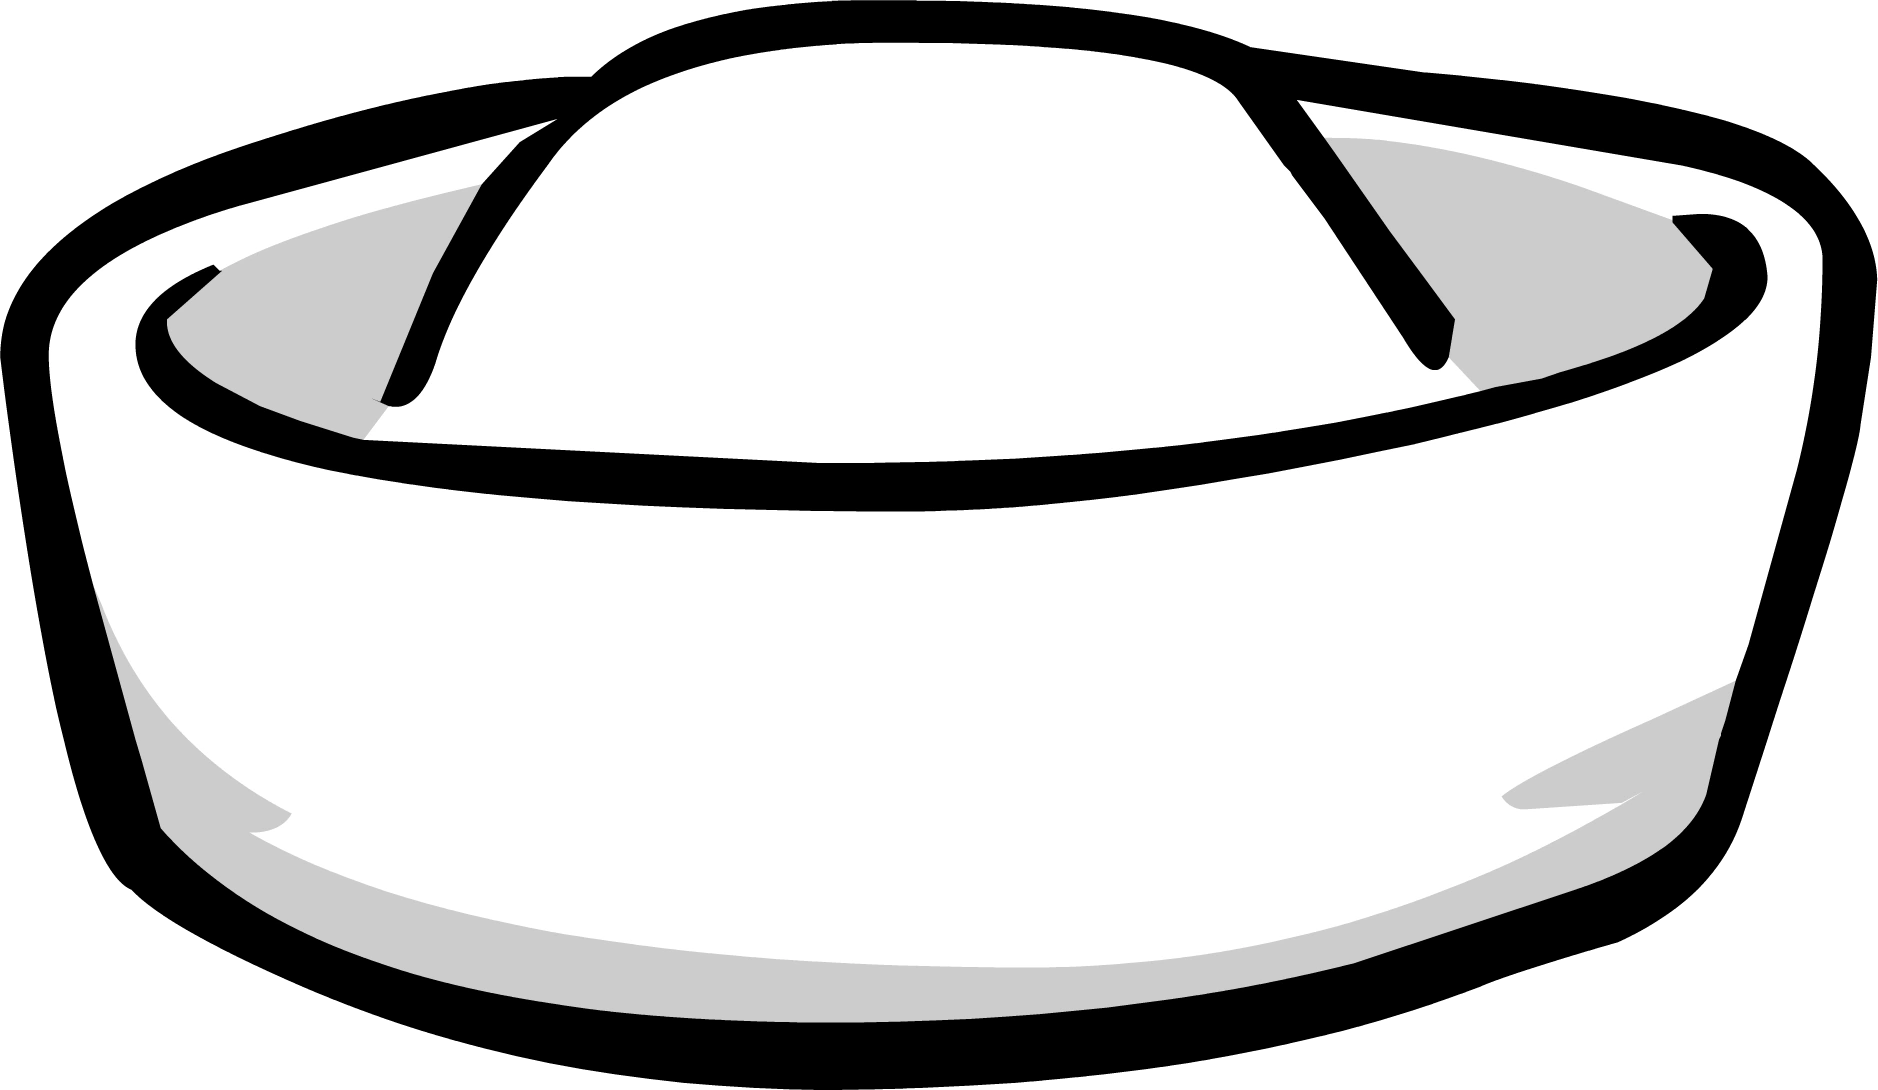 Image Sailor Hat Clothing Icon Id 497png Club Penguin